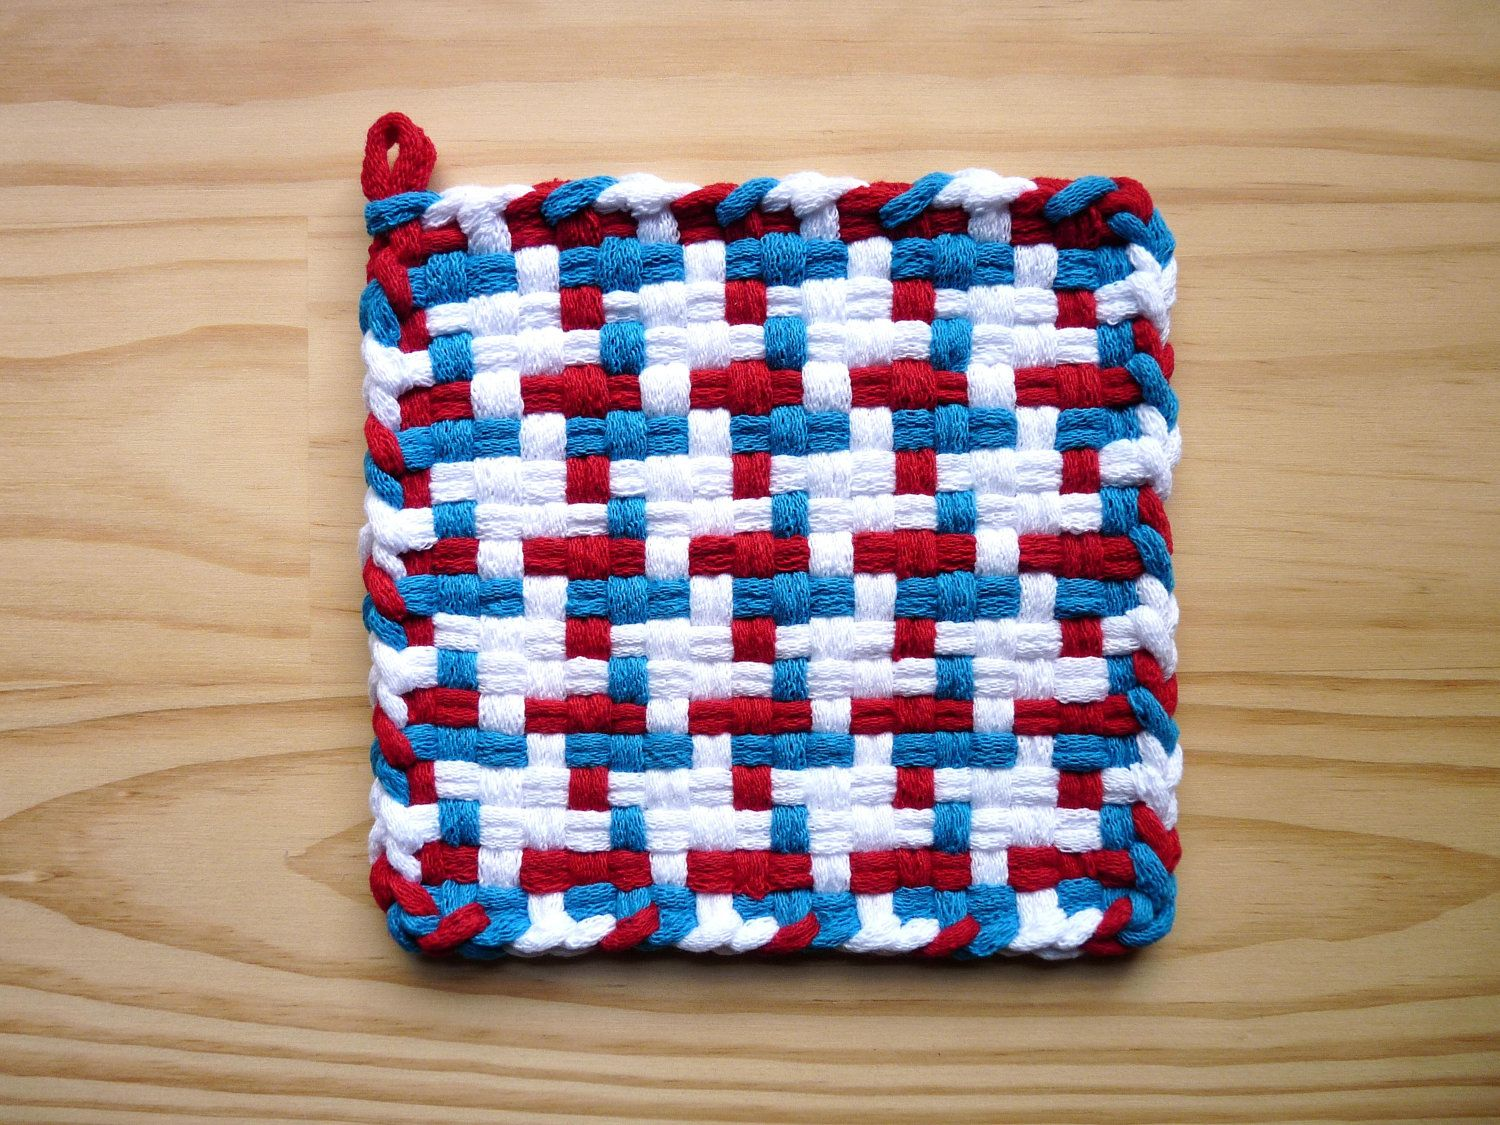 White pot holders for crafts - Red White And Blue Pinwheel Vintage Pattern Woven Cotton Loop Loom Potholder Modern Farmhouse Kitchen Loft Style